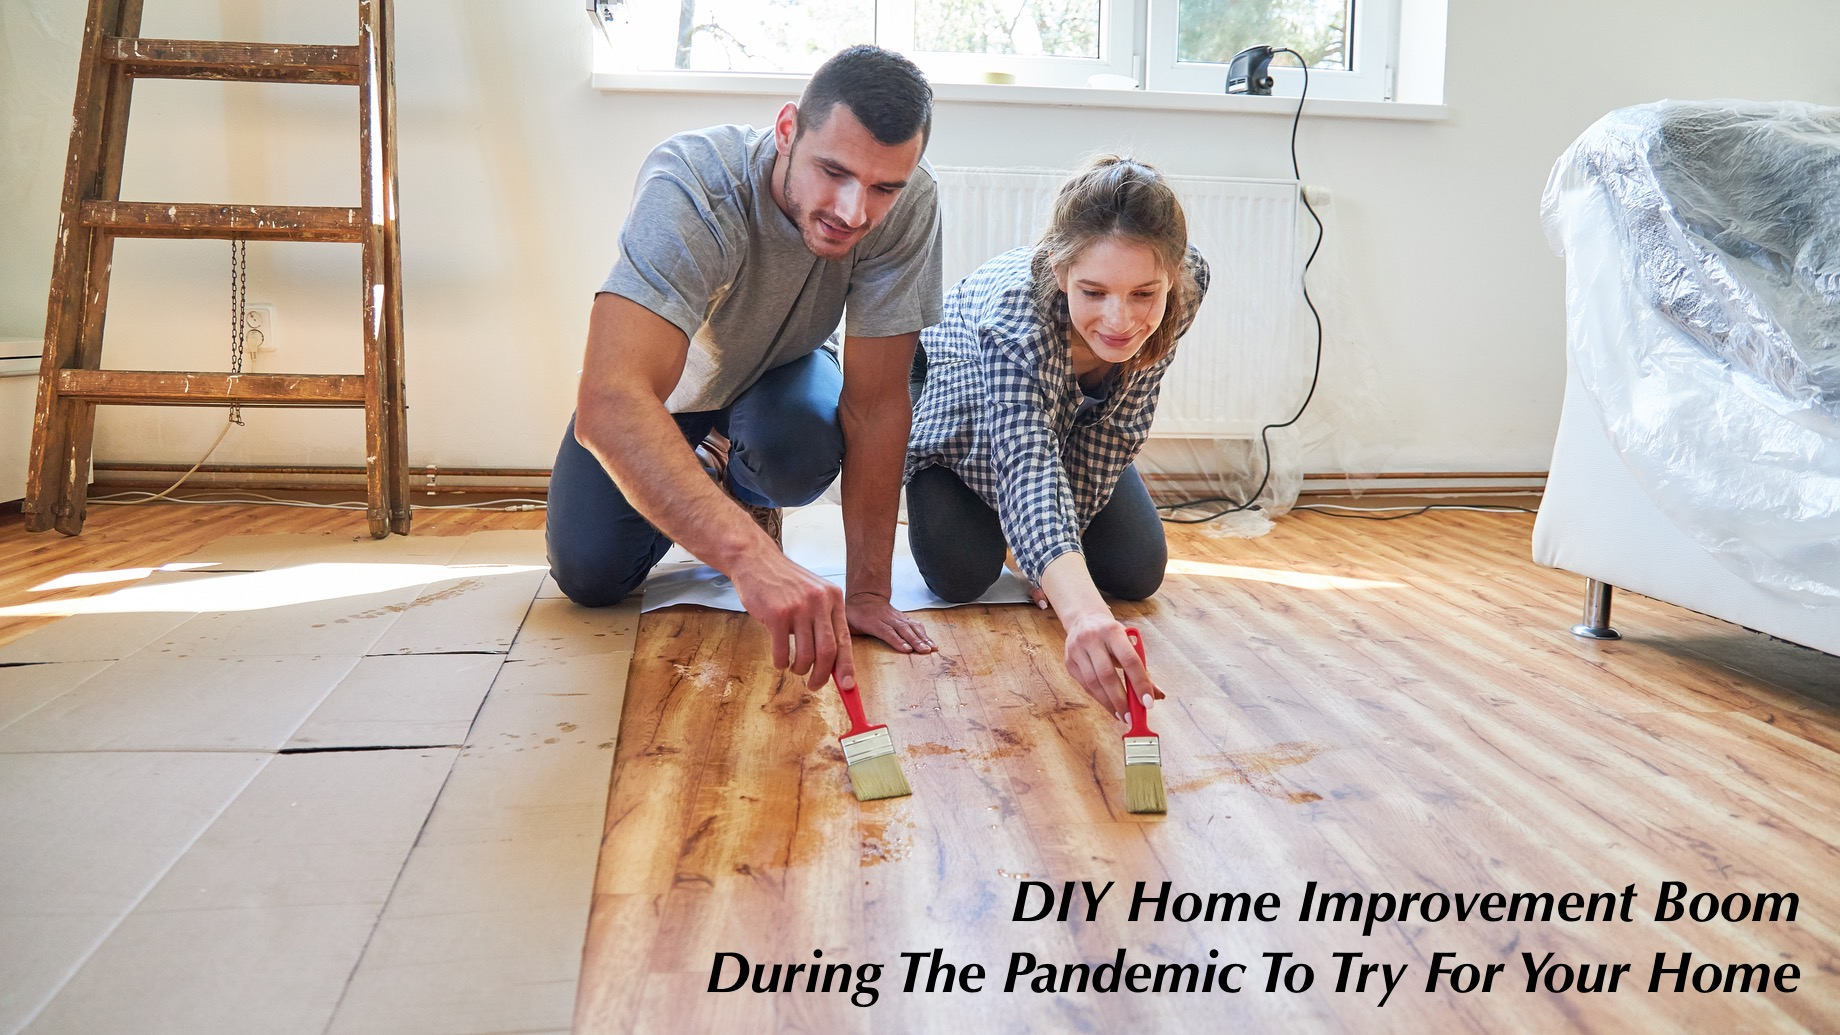 DIY Home Improvement Boom During The Pandemic To Try For Your Home